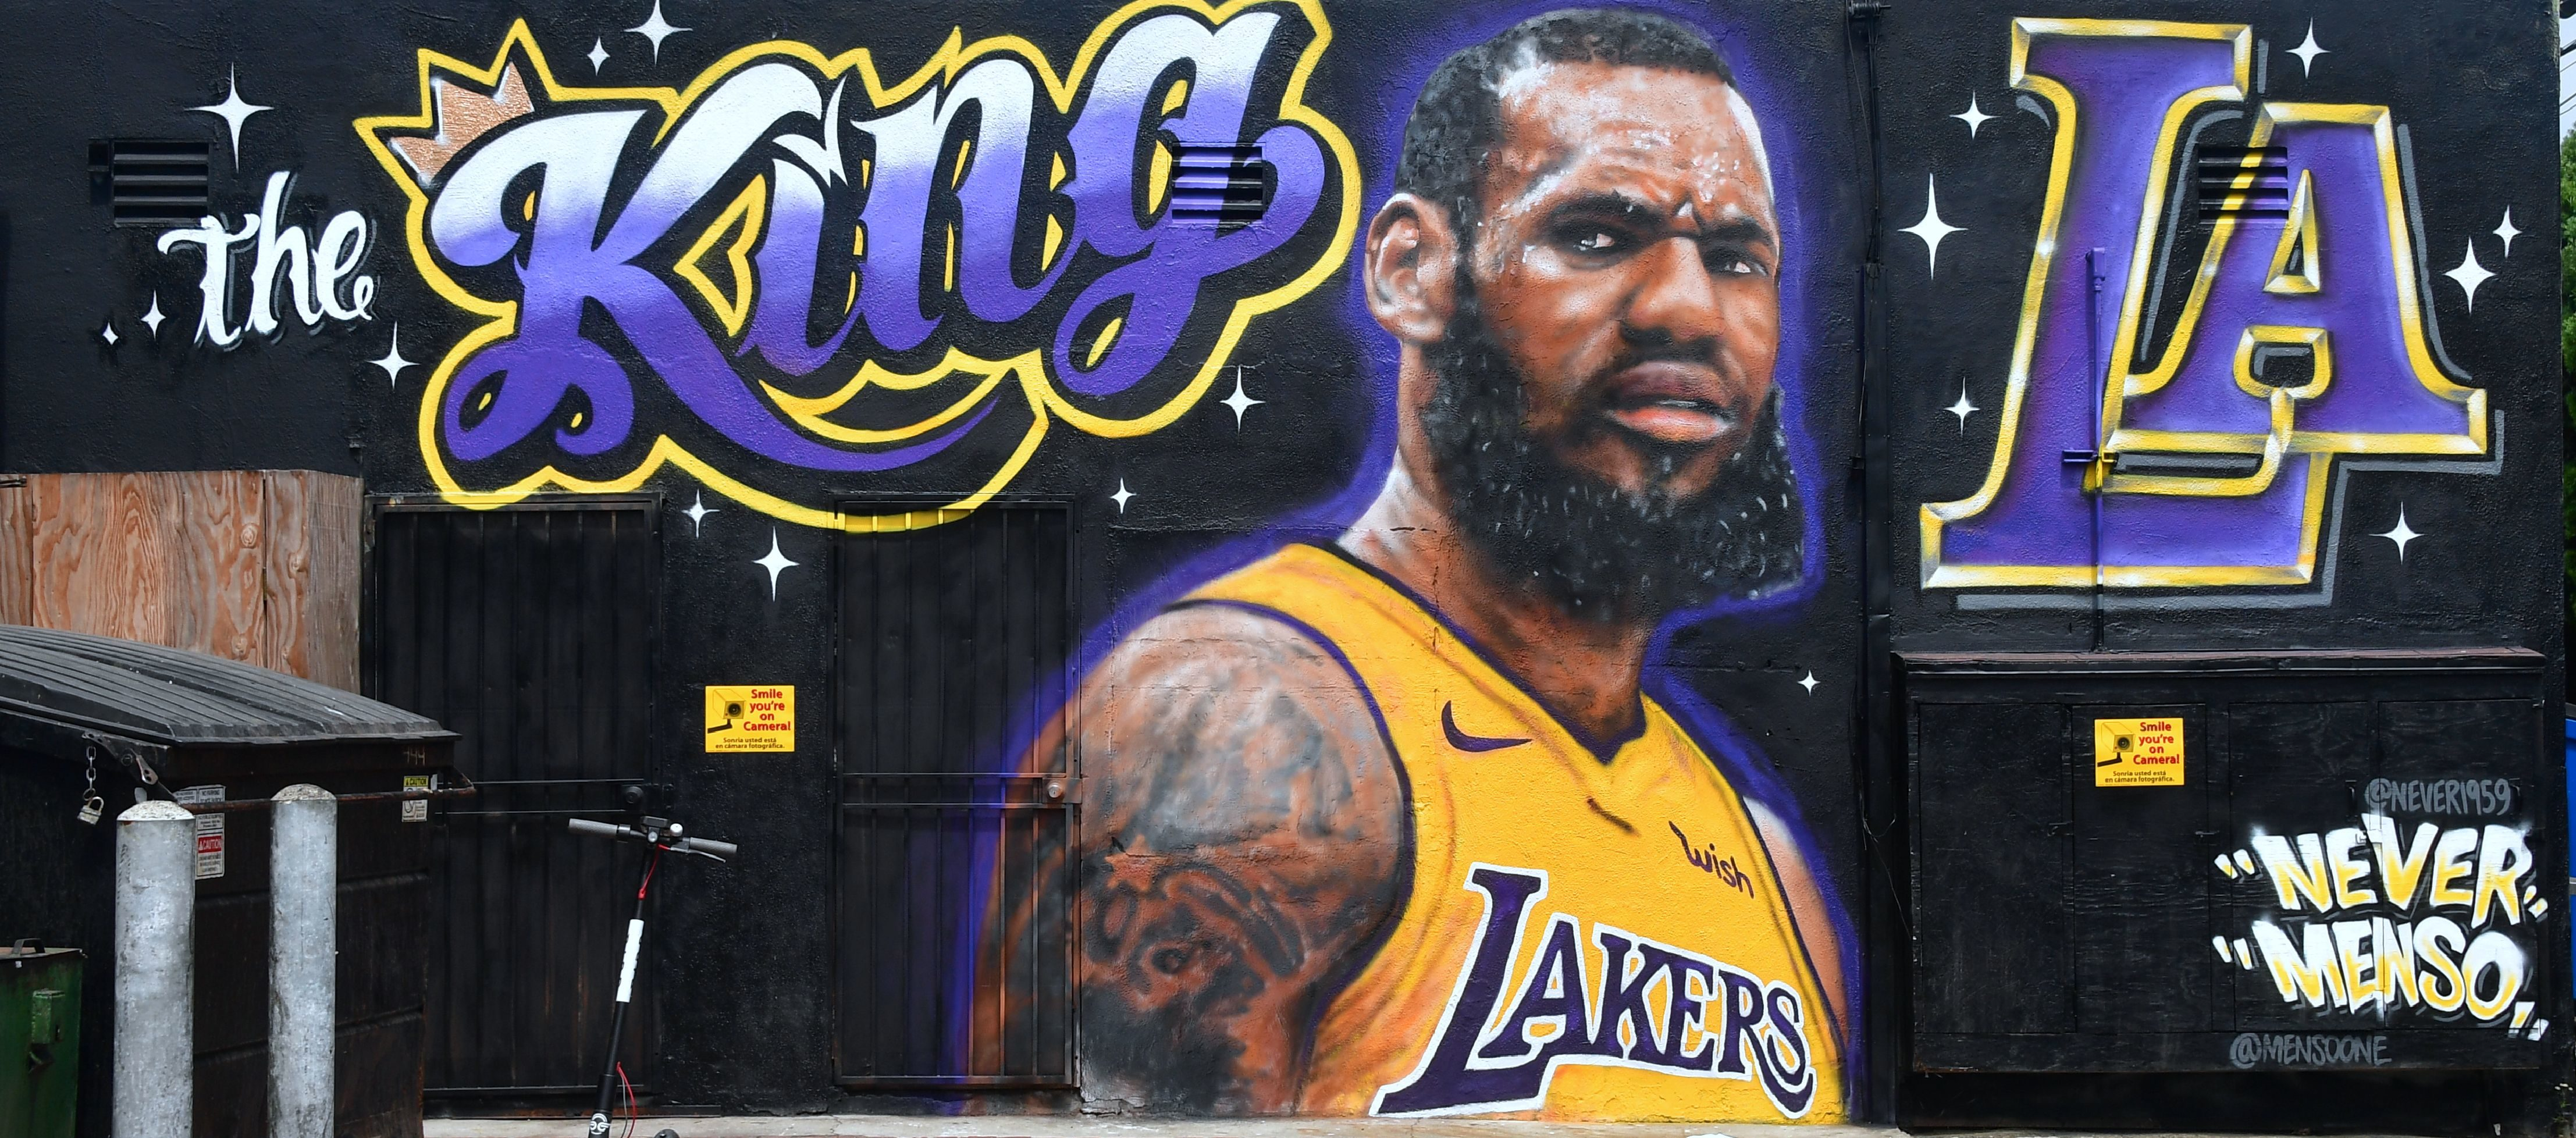 "A mural of LeBron James in a Los Angeles Lakers jersey is viewed in Venice, California on July 9, 2018. - It was originally revealed July 6, 2018, and then vandalized over the weekend, and re-touched up again with the word ""of"" not repainted from the original words ""the King of LA"". Artists Jonas Never and Menso One painted the mural to welcome LeBron James to Los Angeles, outside the Baby Blues BBQ resturant in Venice, California. (Photo by Frederic J. BROWN / AFP)"